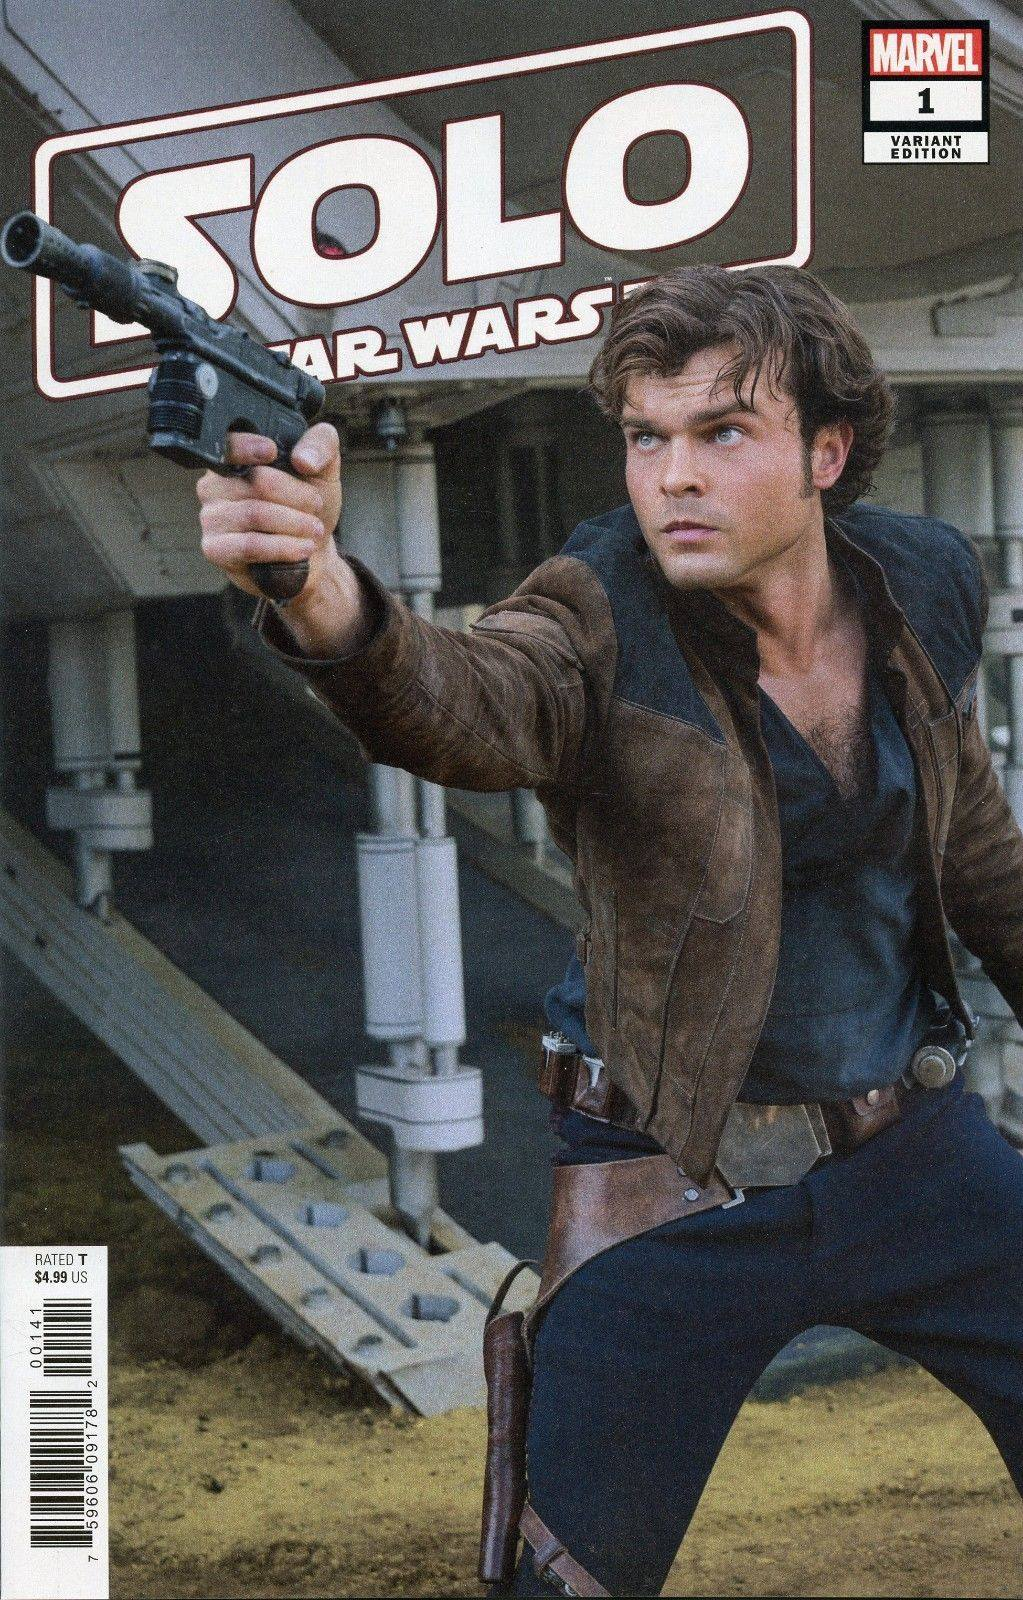 Solo #1 (Movie Variant Cover) (10.10.2018)